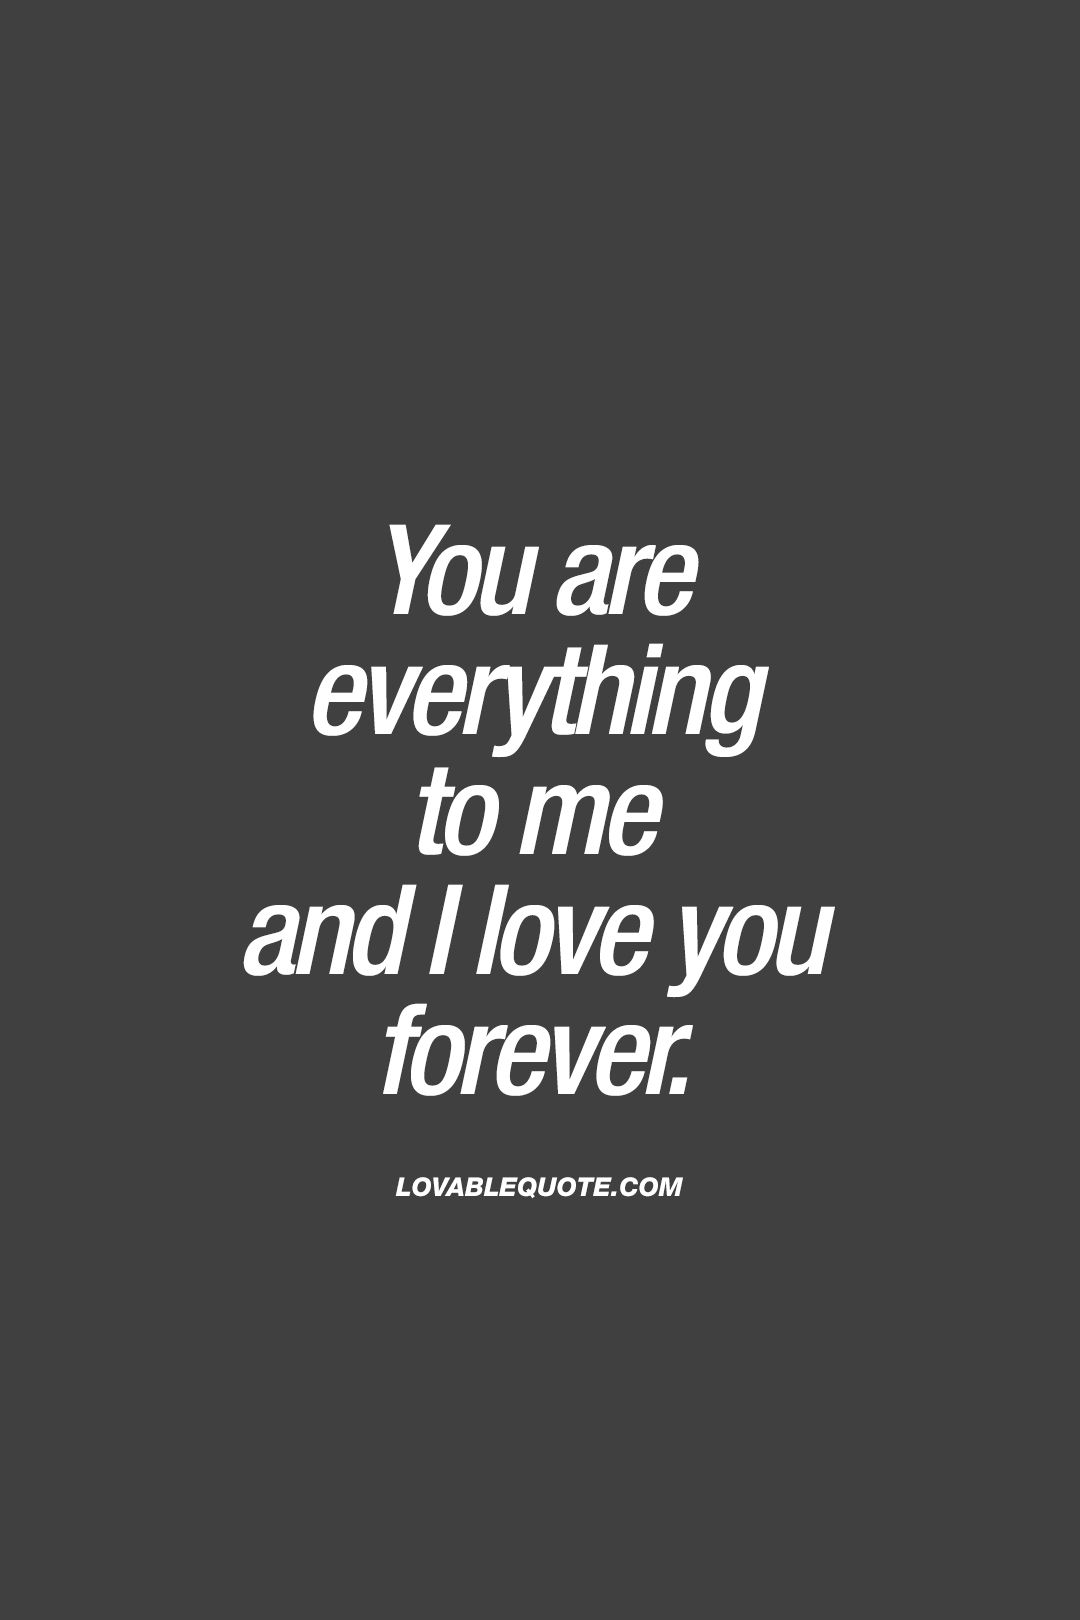 You are everything to me and I love you forever